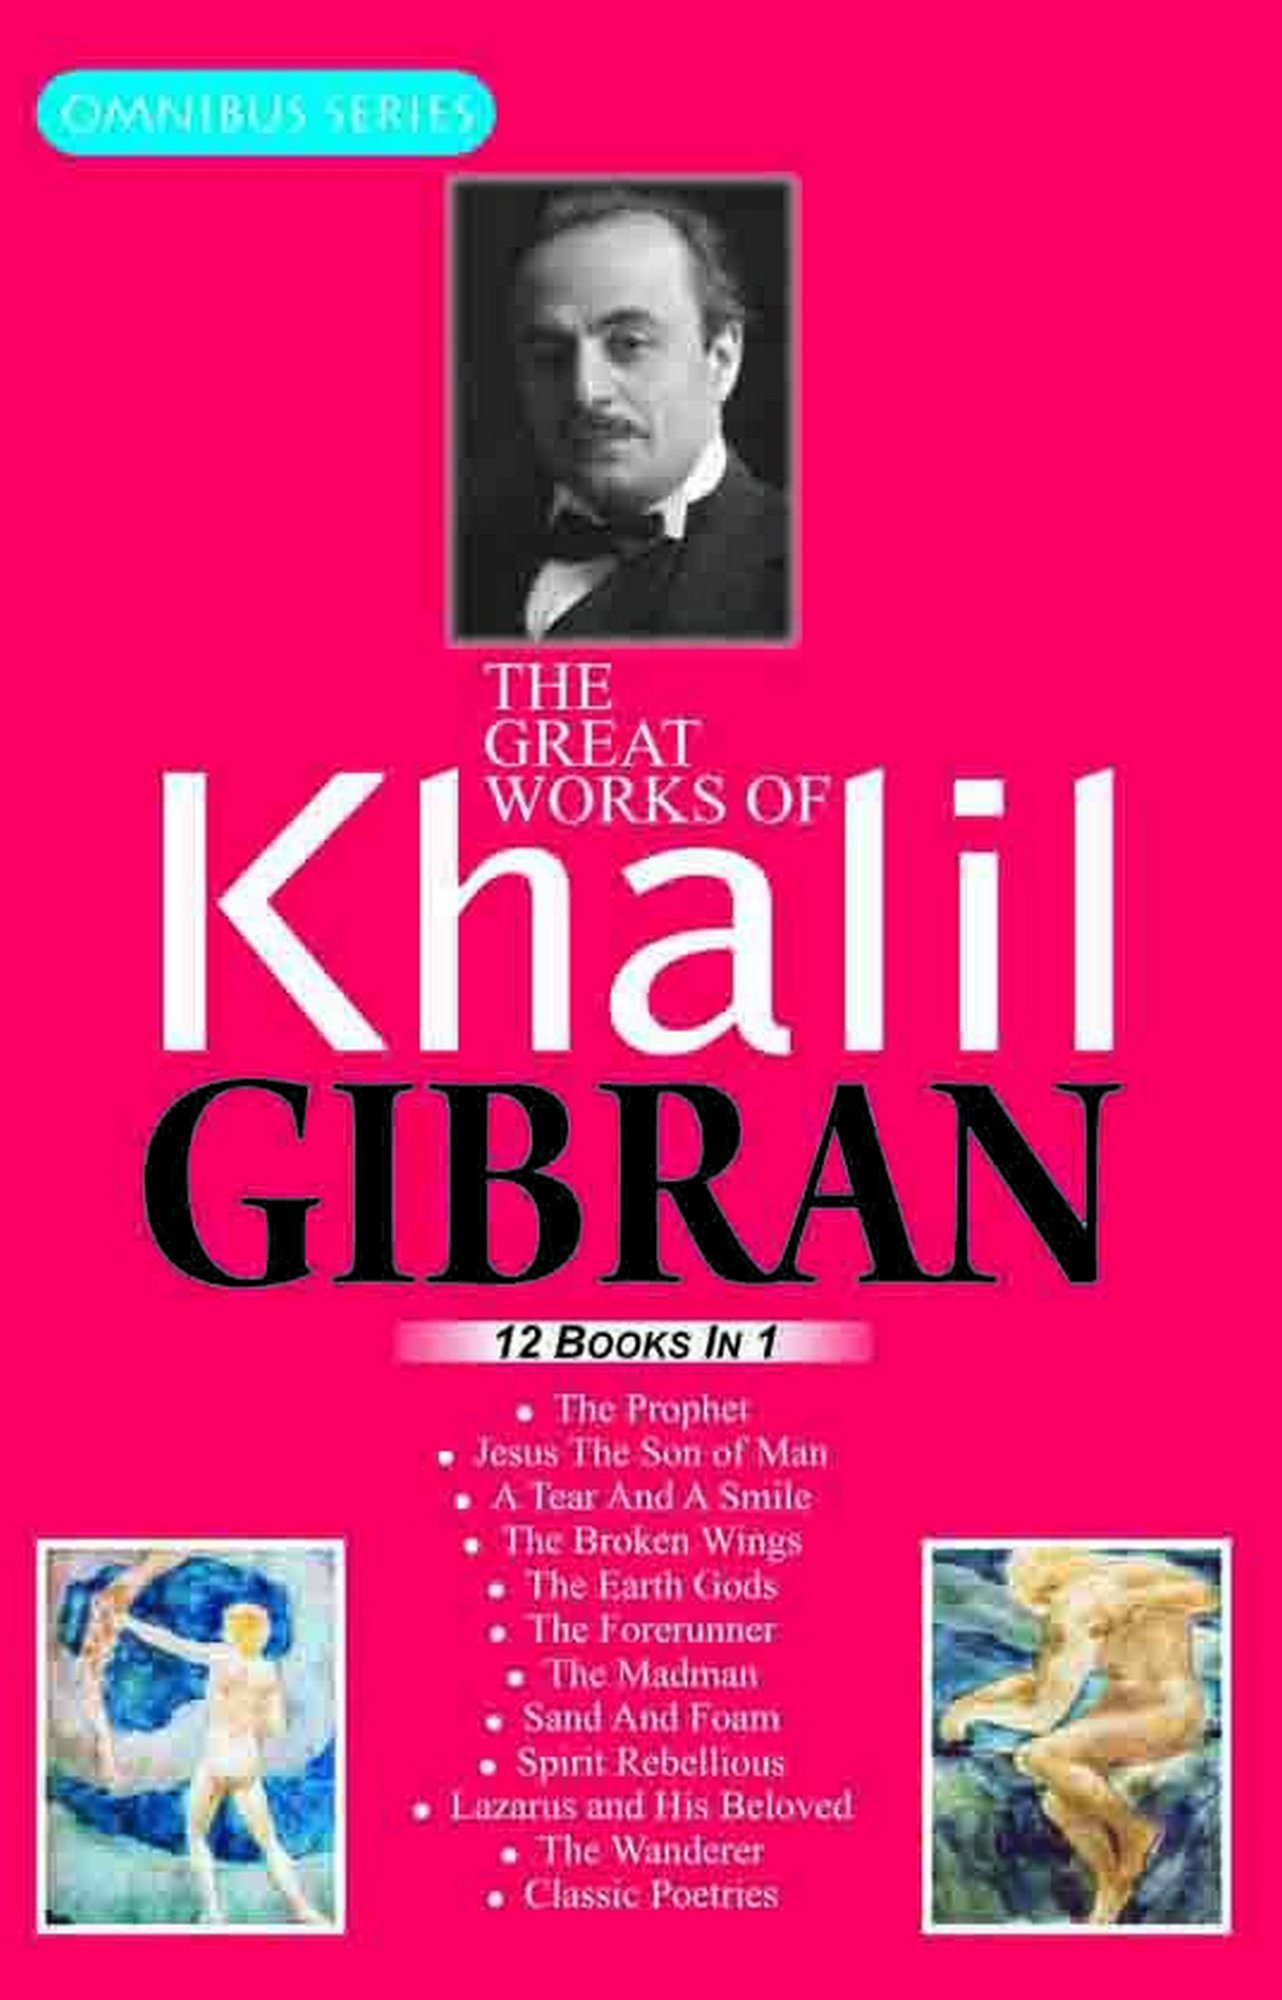 Omnibus Series : The Great Works of Khalil Gibran